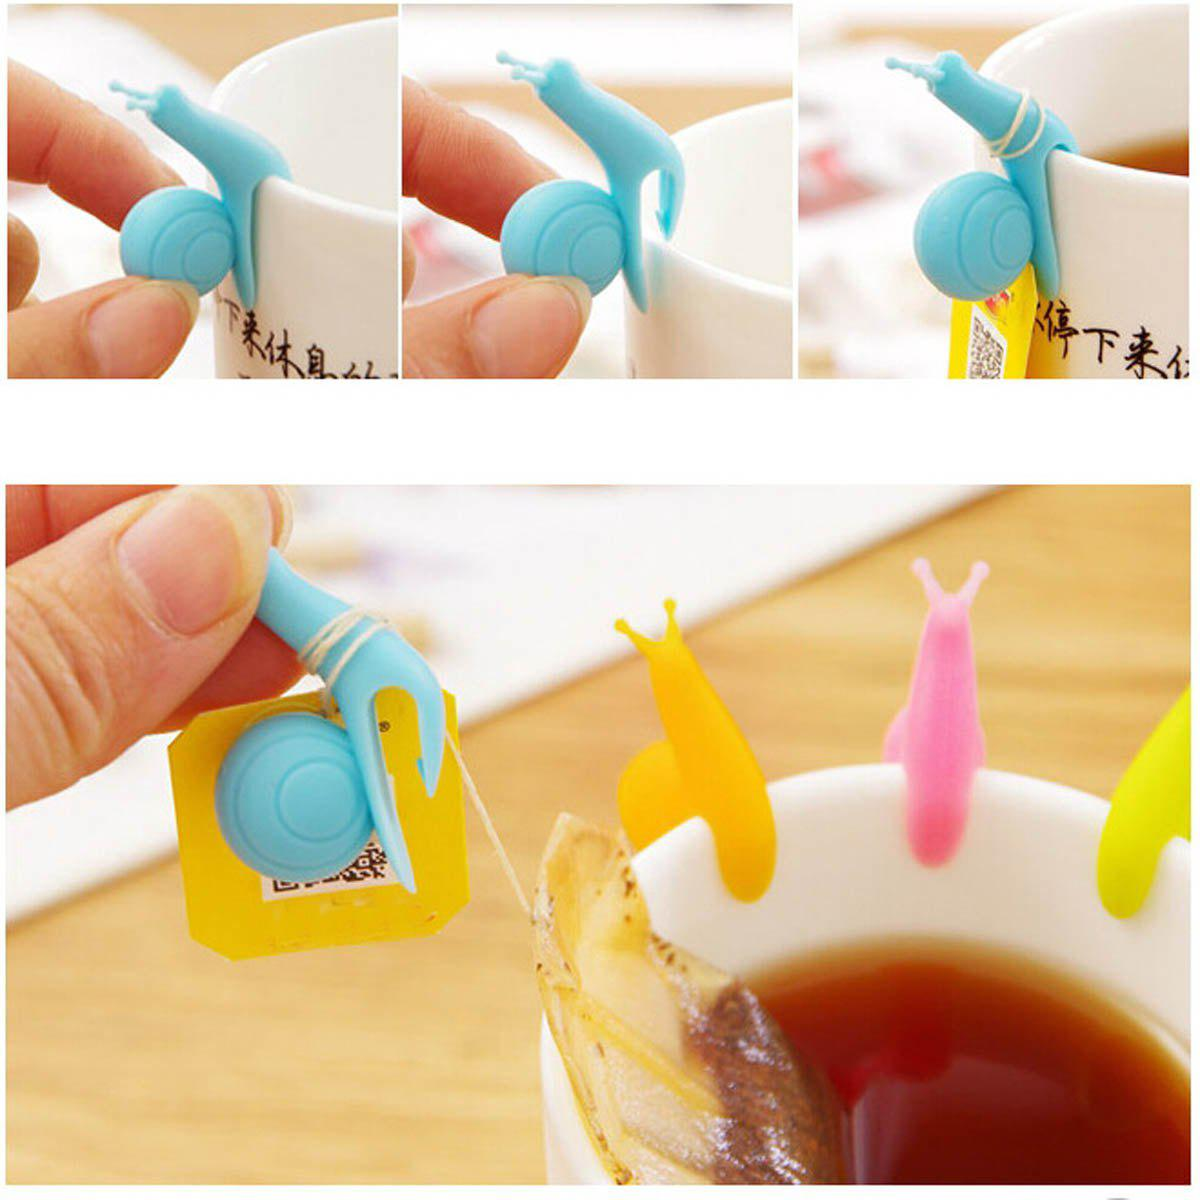 6PCS Cute Snail Design Silicone Tea Bag Holder Cup Mug AccessoryHOME<br><br>Color: RANDOM COLOR; Type: Novelty,Eco-friendly,Decoration,Practical; For: All; Occasion: Home,Living Room,Bedroom,Dining Room,Office,Others; Material: Silicone;